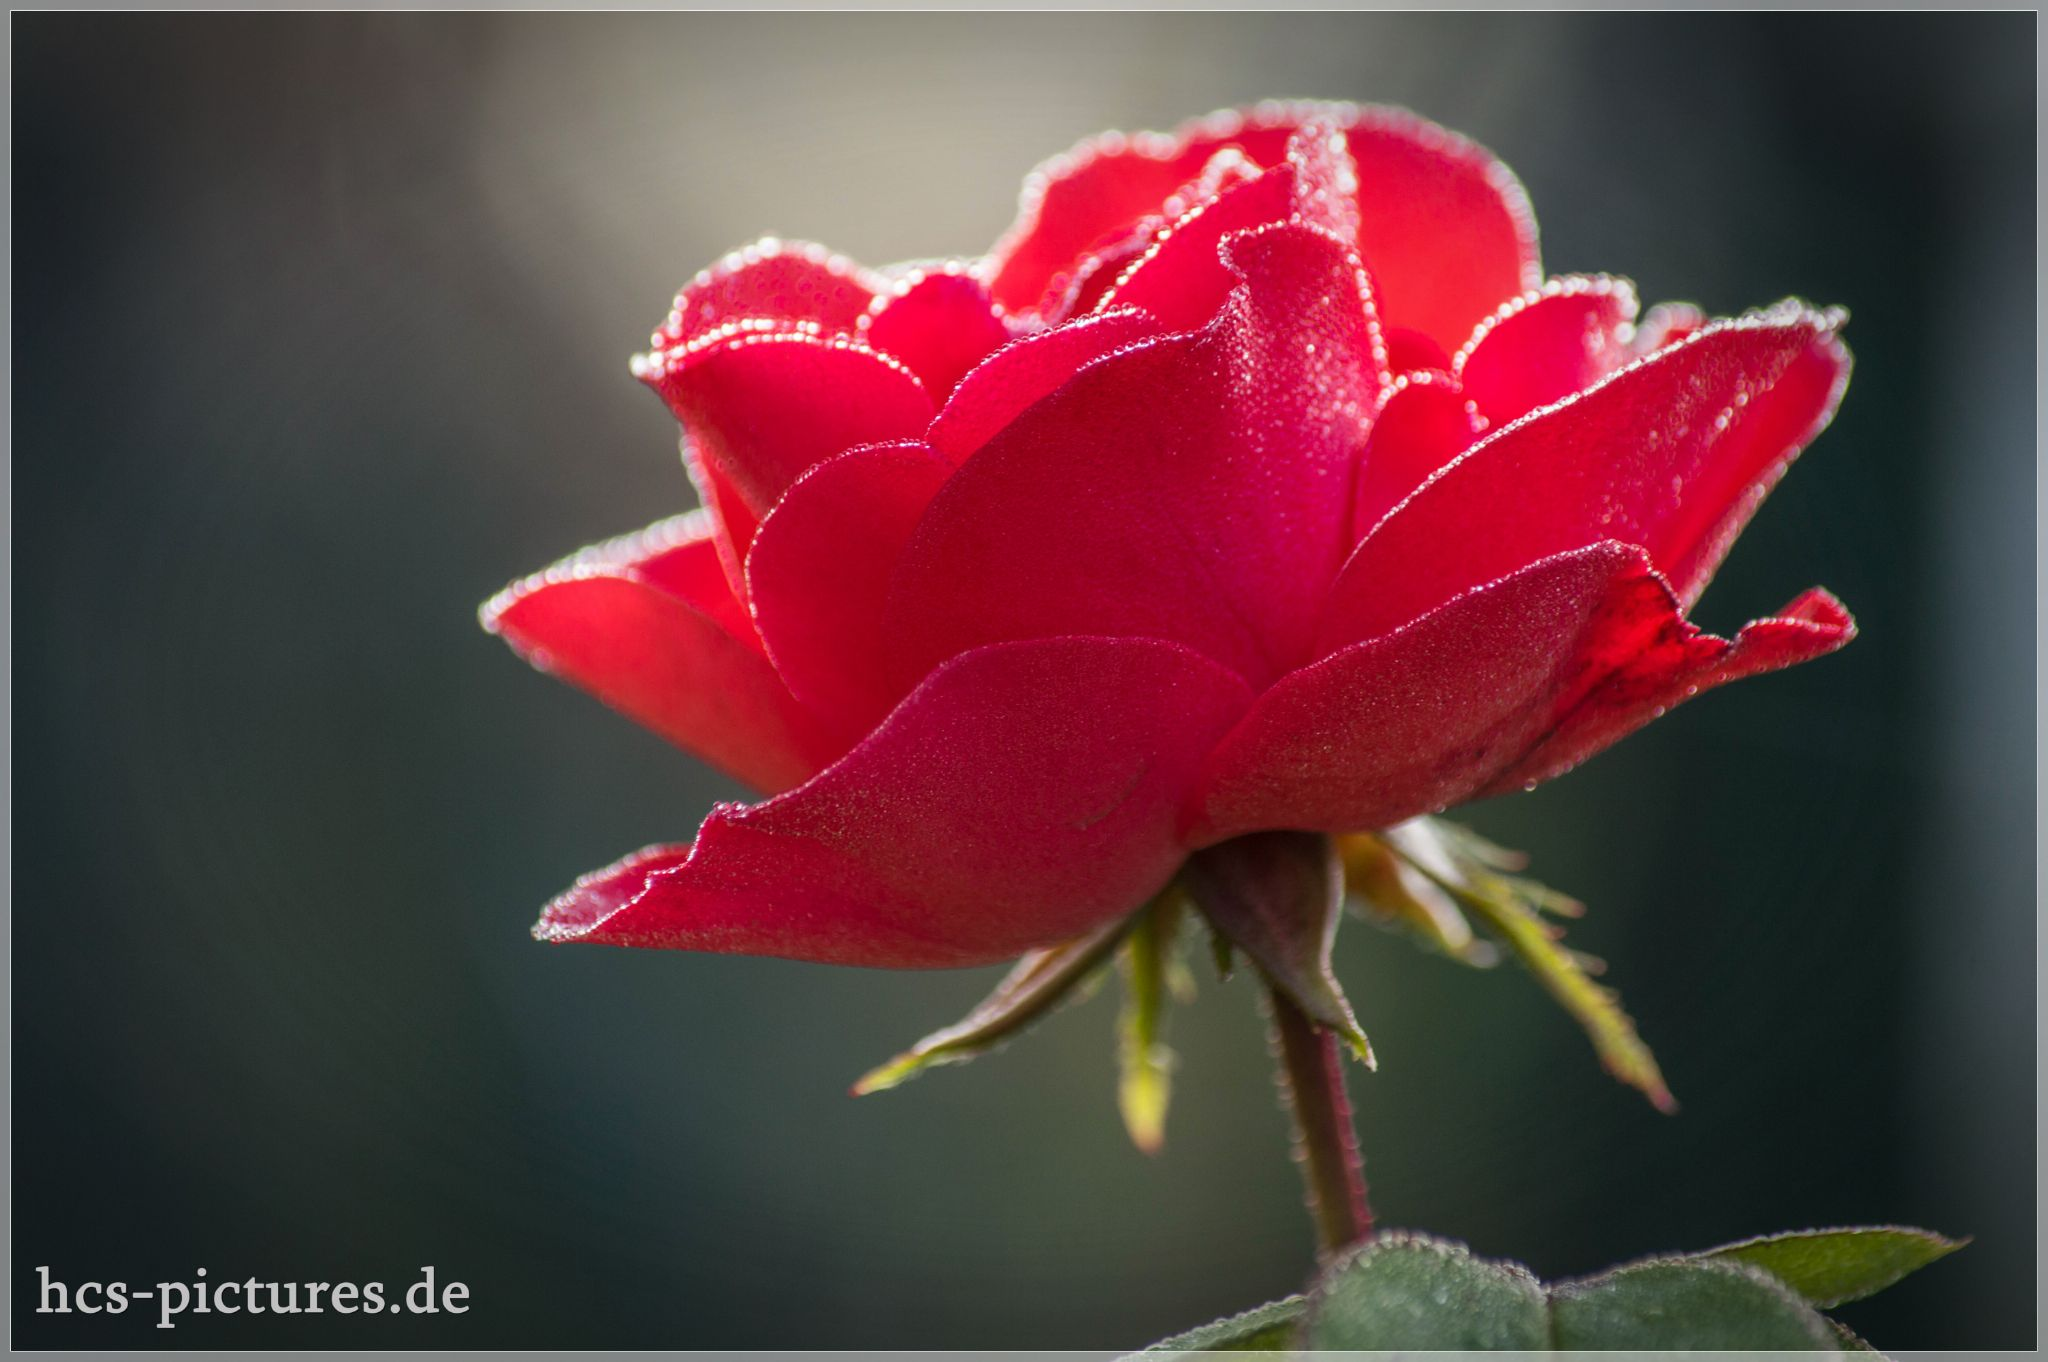 rose by Steffi Wintermantel (hcs-pictures)